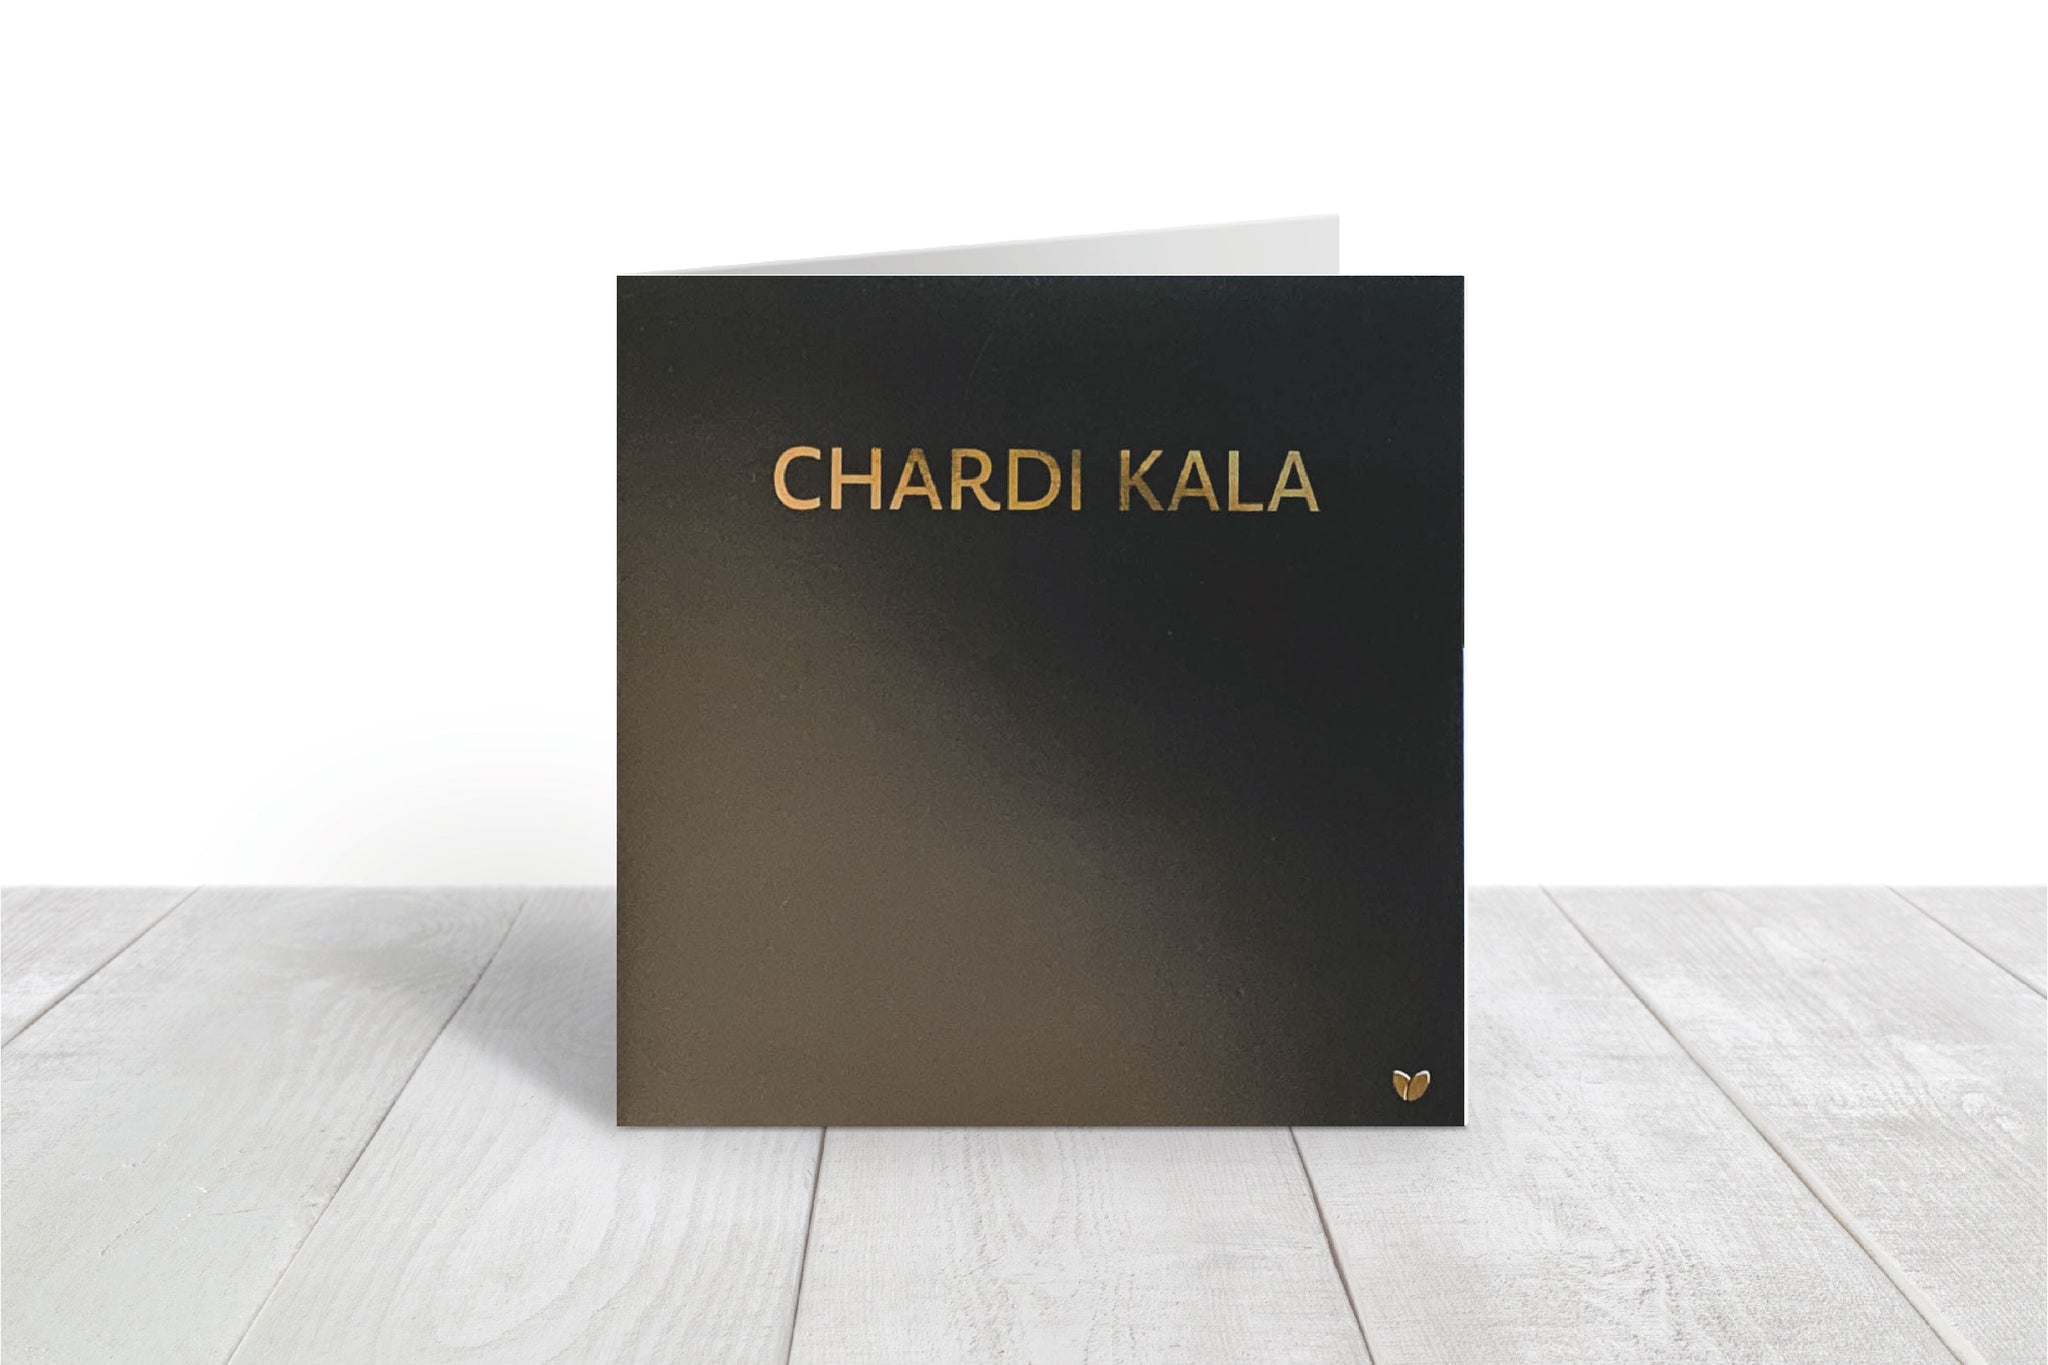 Chardi kala - Chardikala Punjabi greeting card - Sikh quotes